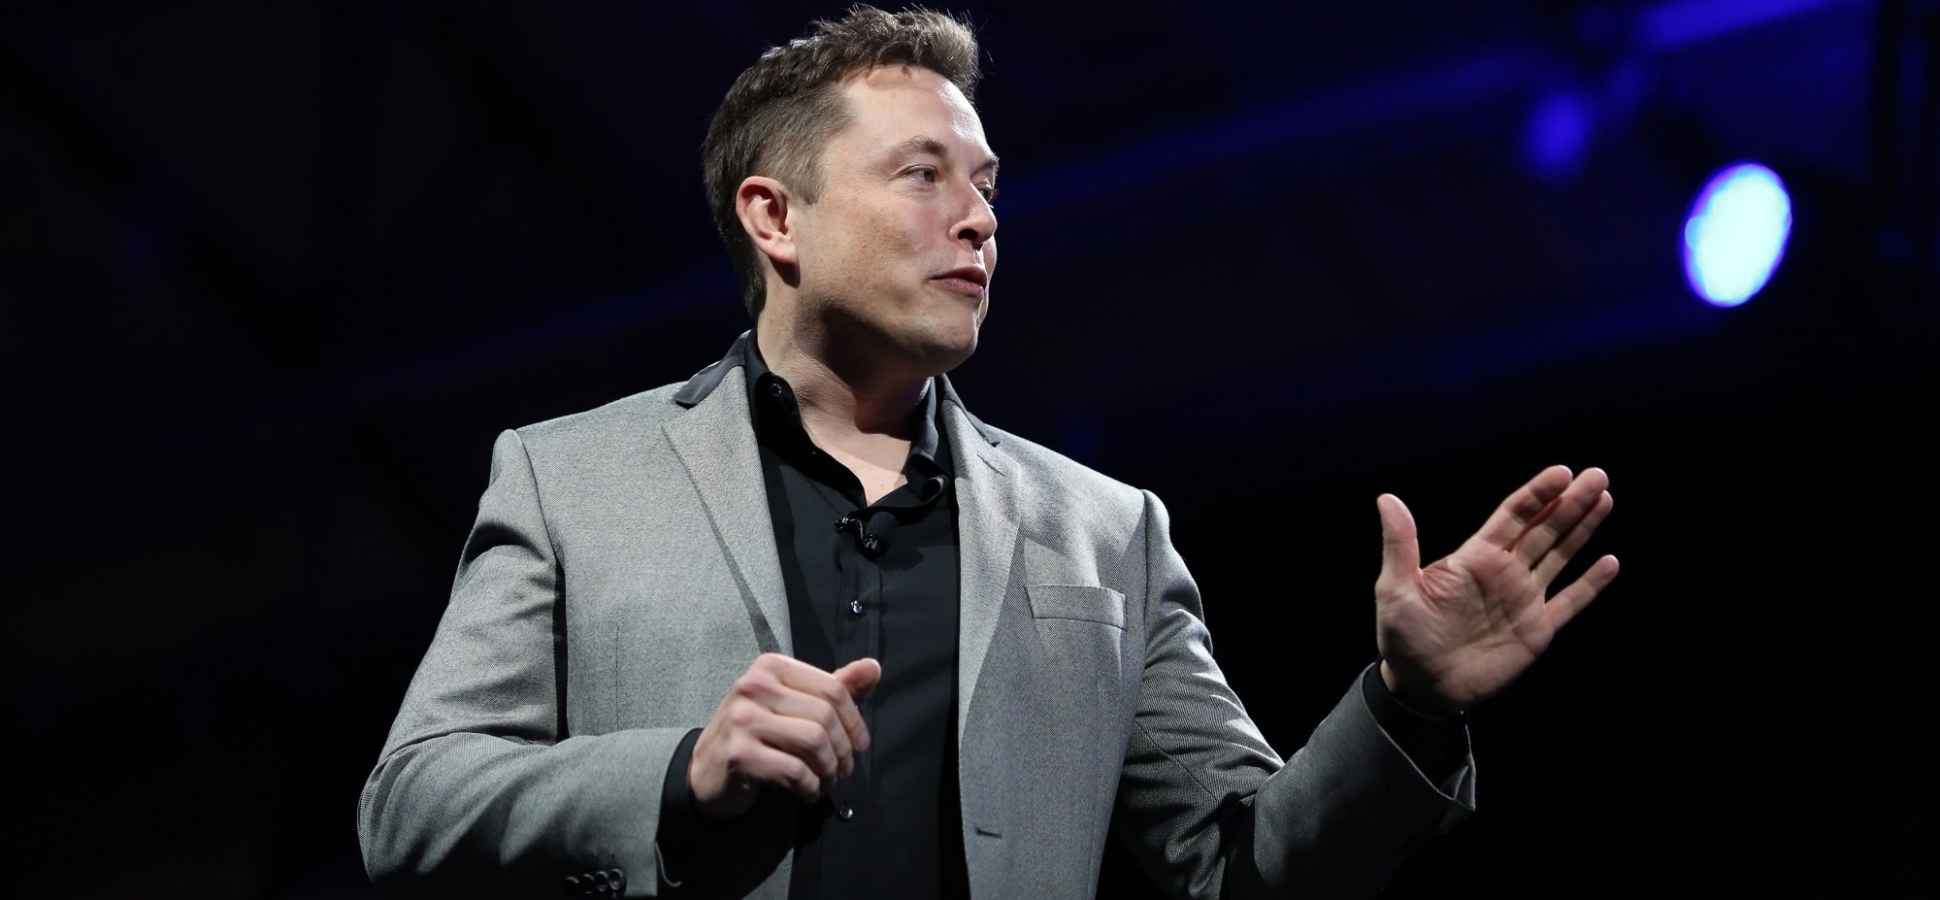 This Is the Mindset That Makes Elon Musk So Incredibly Successful